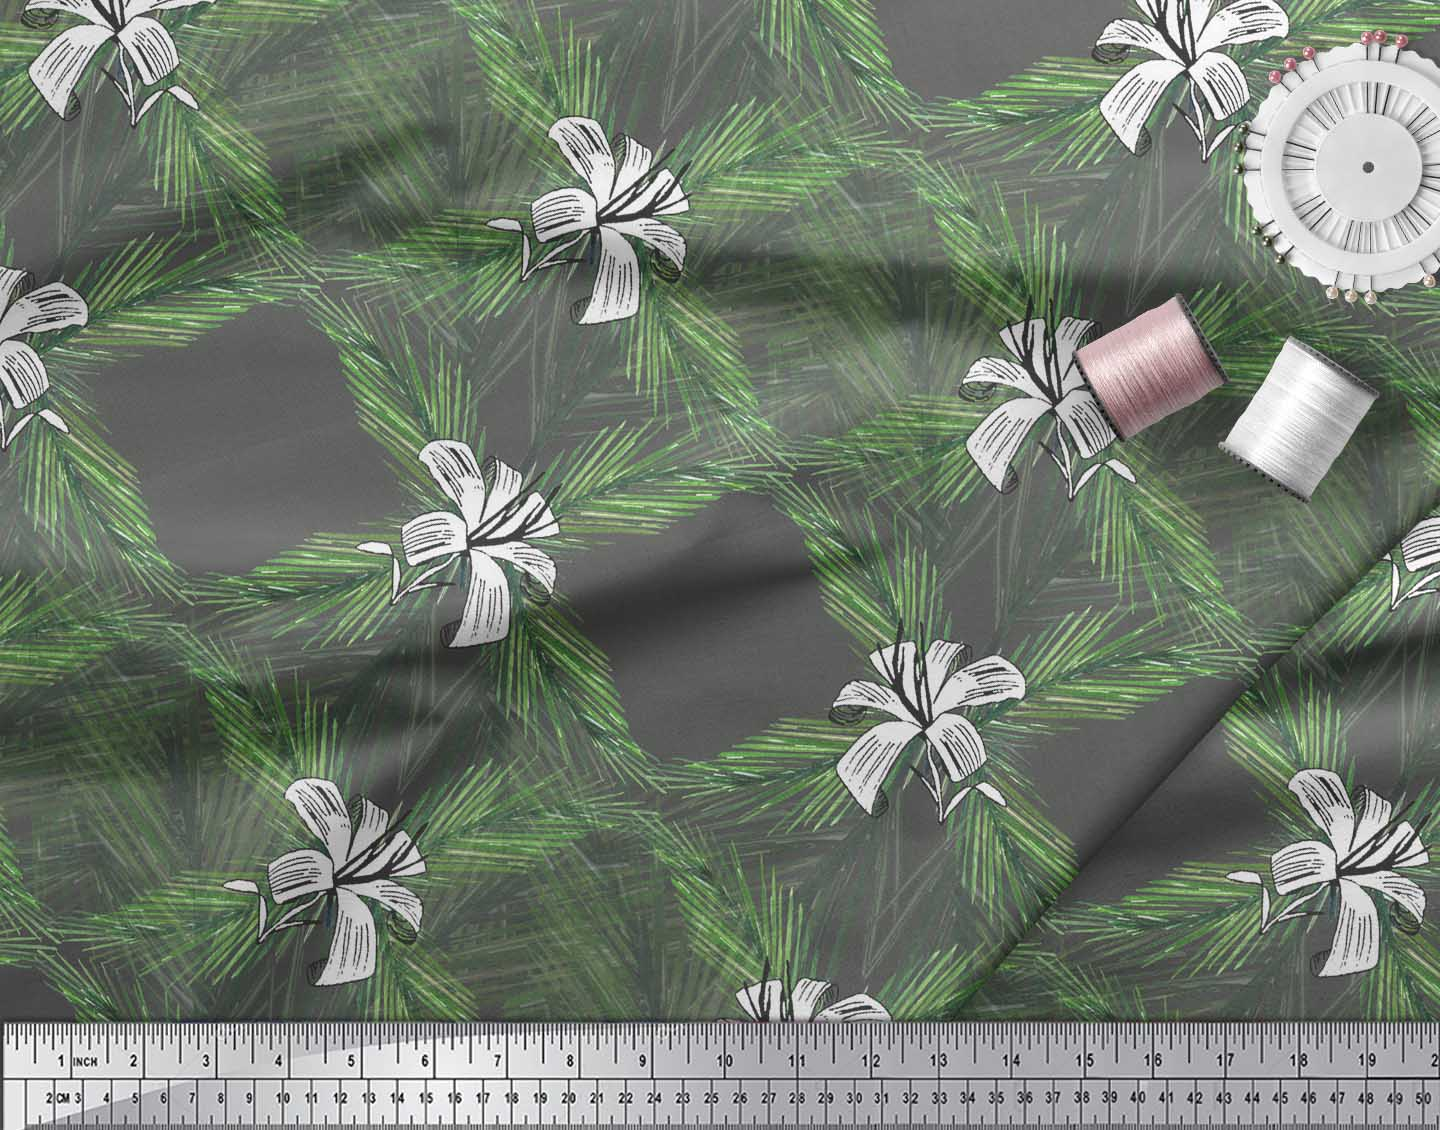 Soimoi-Gray-Cotton-Poplin-Fabric-Pine-amp-Leaves-Printed-Craft-Fabric-27p thumbnail 4